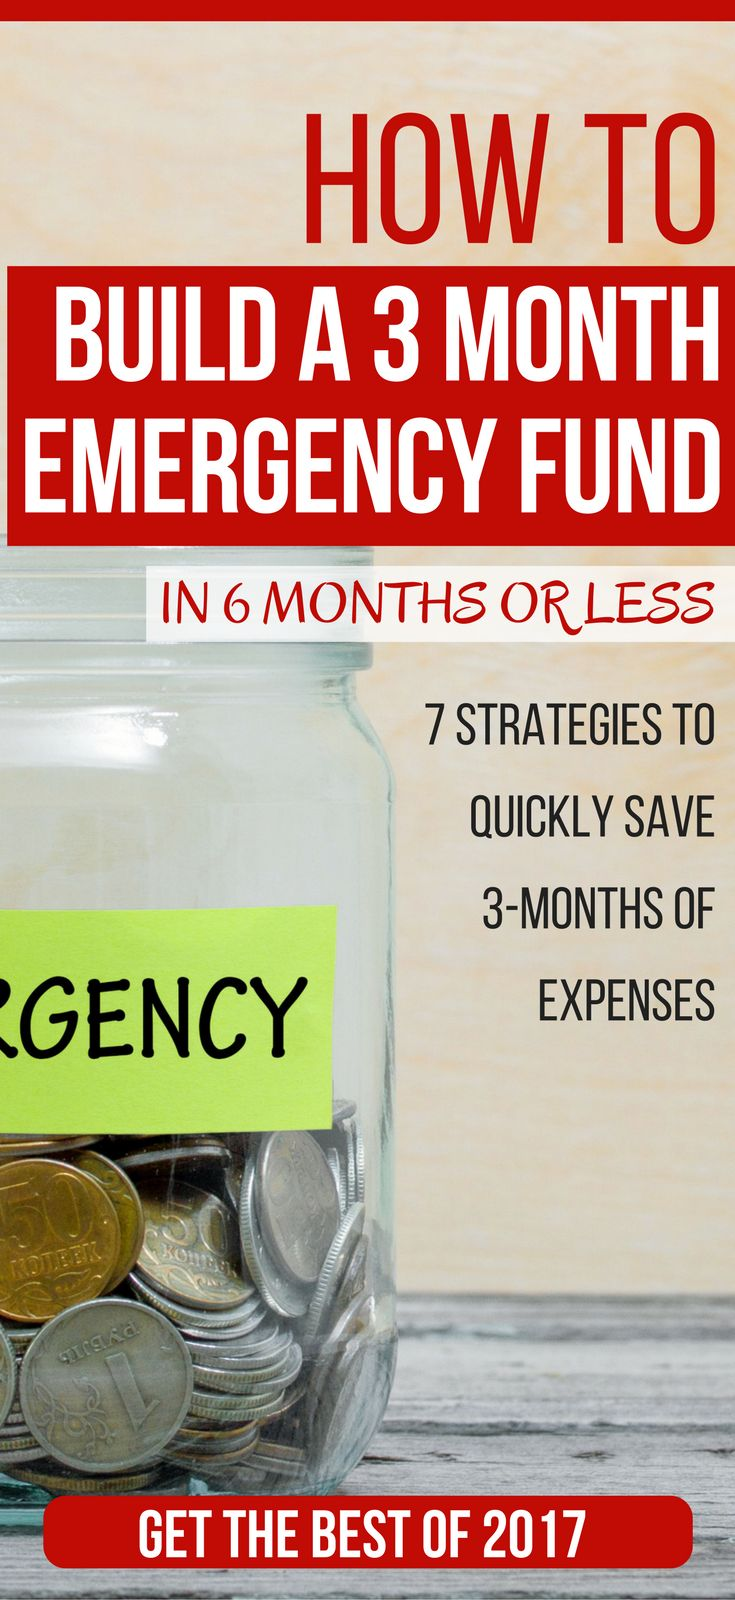 How To Build A 3 Month Emergency Fund In 180 Days Or Less emergency fund savings plan | emergency fund tips | emergency fund savings plan dave ramsey | building your emergency fund #challenge #debt #savings #savingmoney